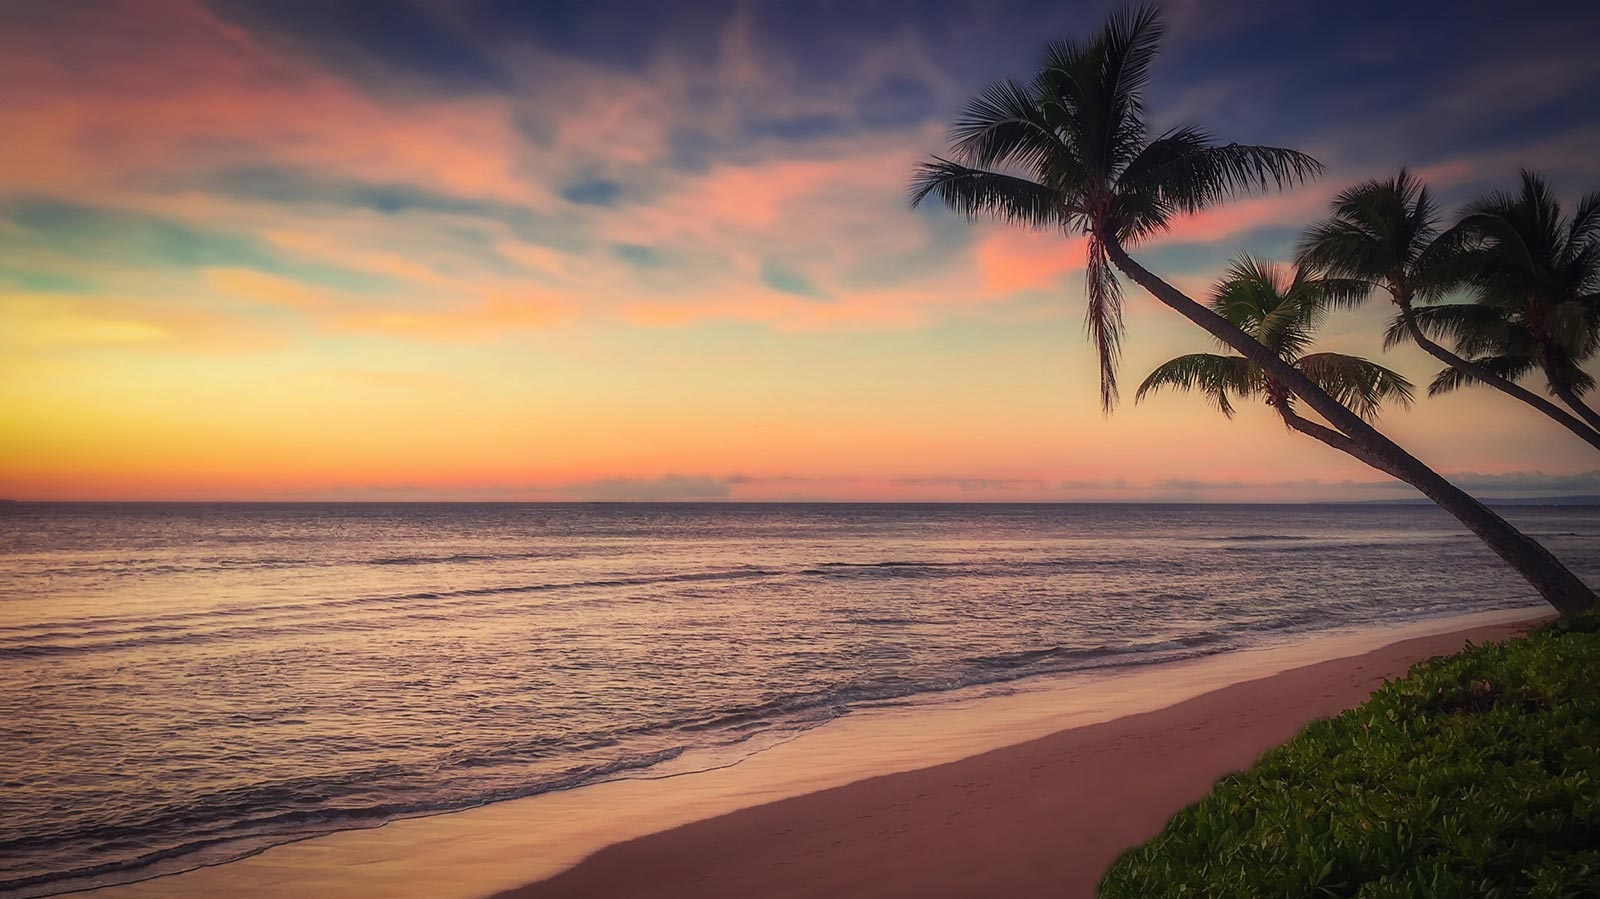 Sunset Palm Trees on the Beach | Sunset Coast Construction Services, LLC